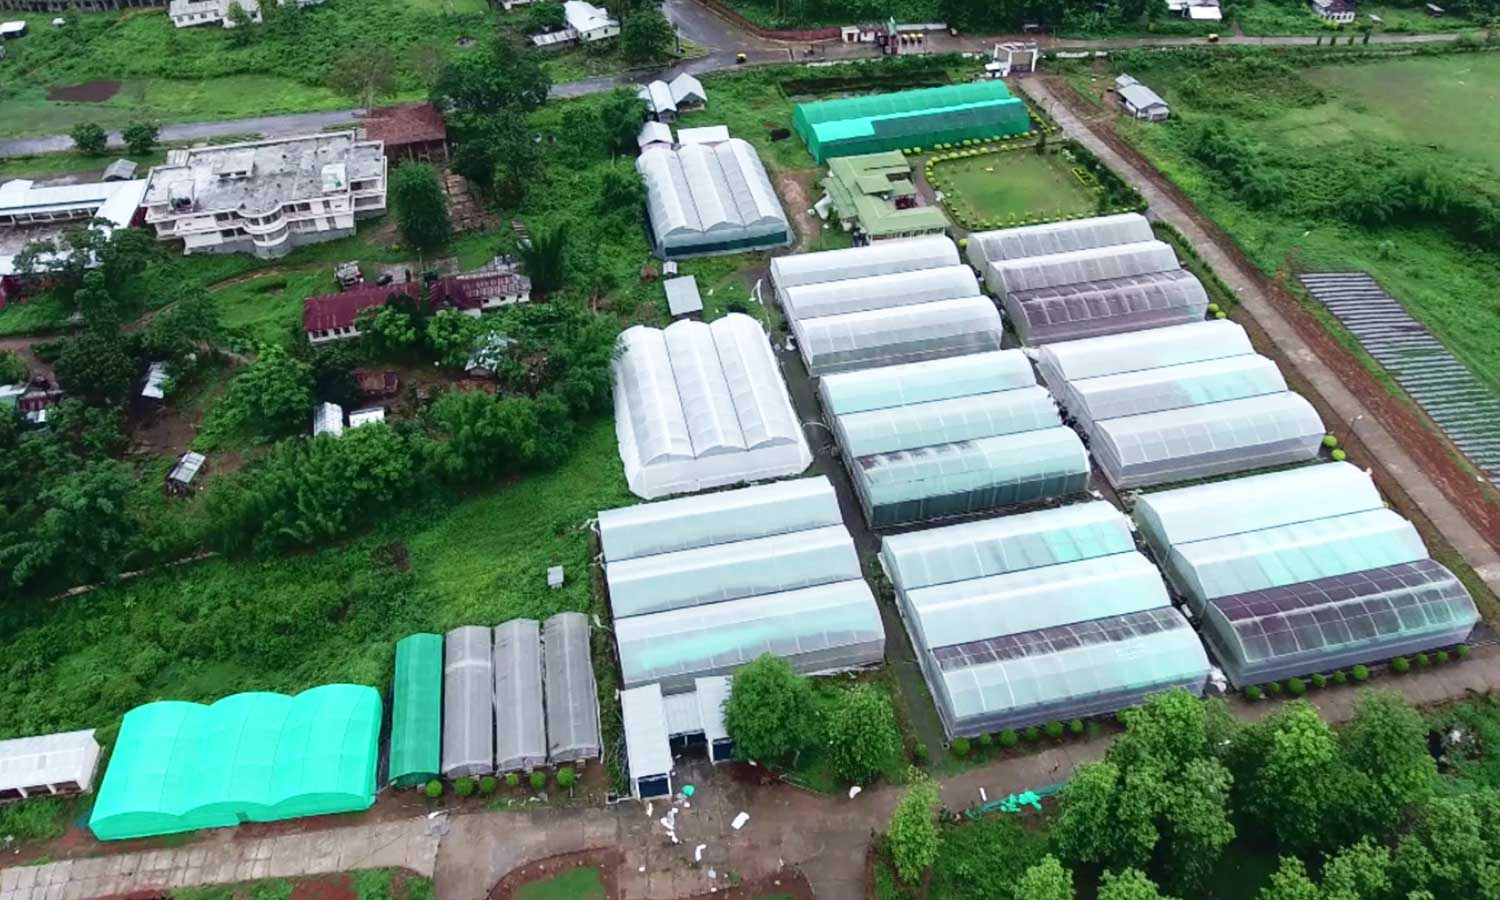 Aerial View of Polyhouse